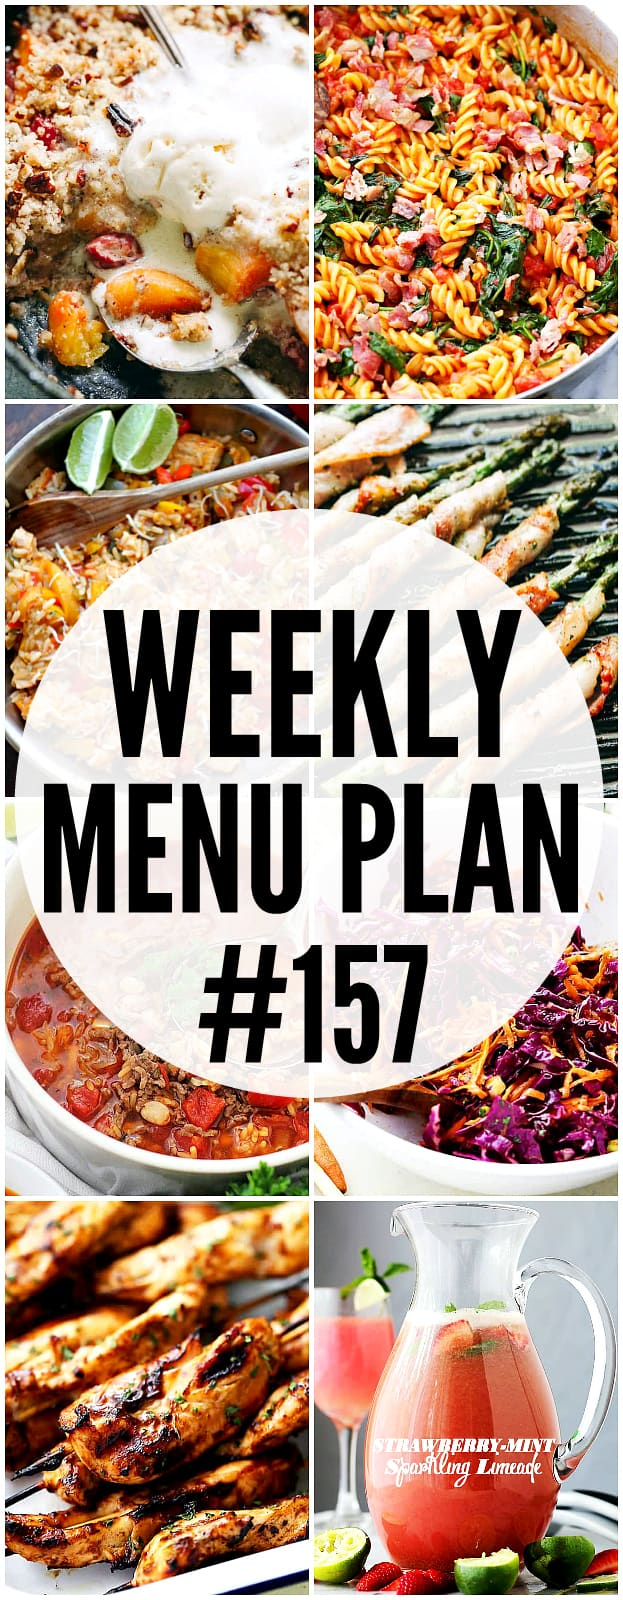 WEEKLY MENU PLAN (#157) – A delicious collection of dinner, side dish and dessert recipes to help you plan your weekly menu and make life easier for you!